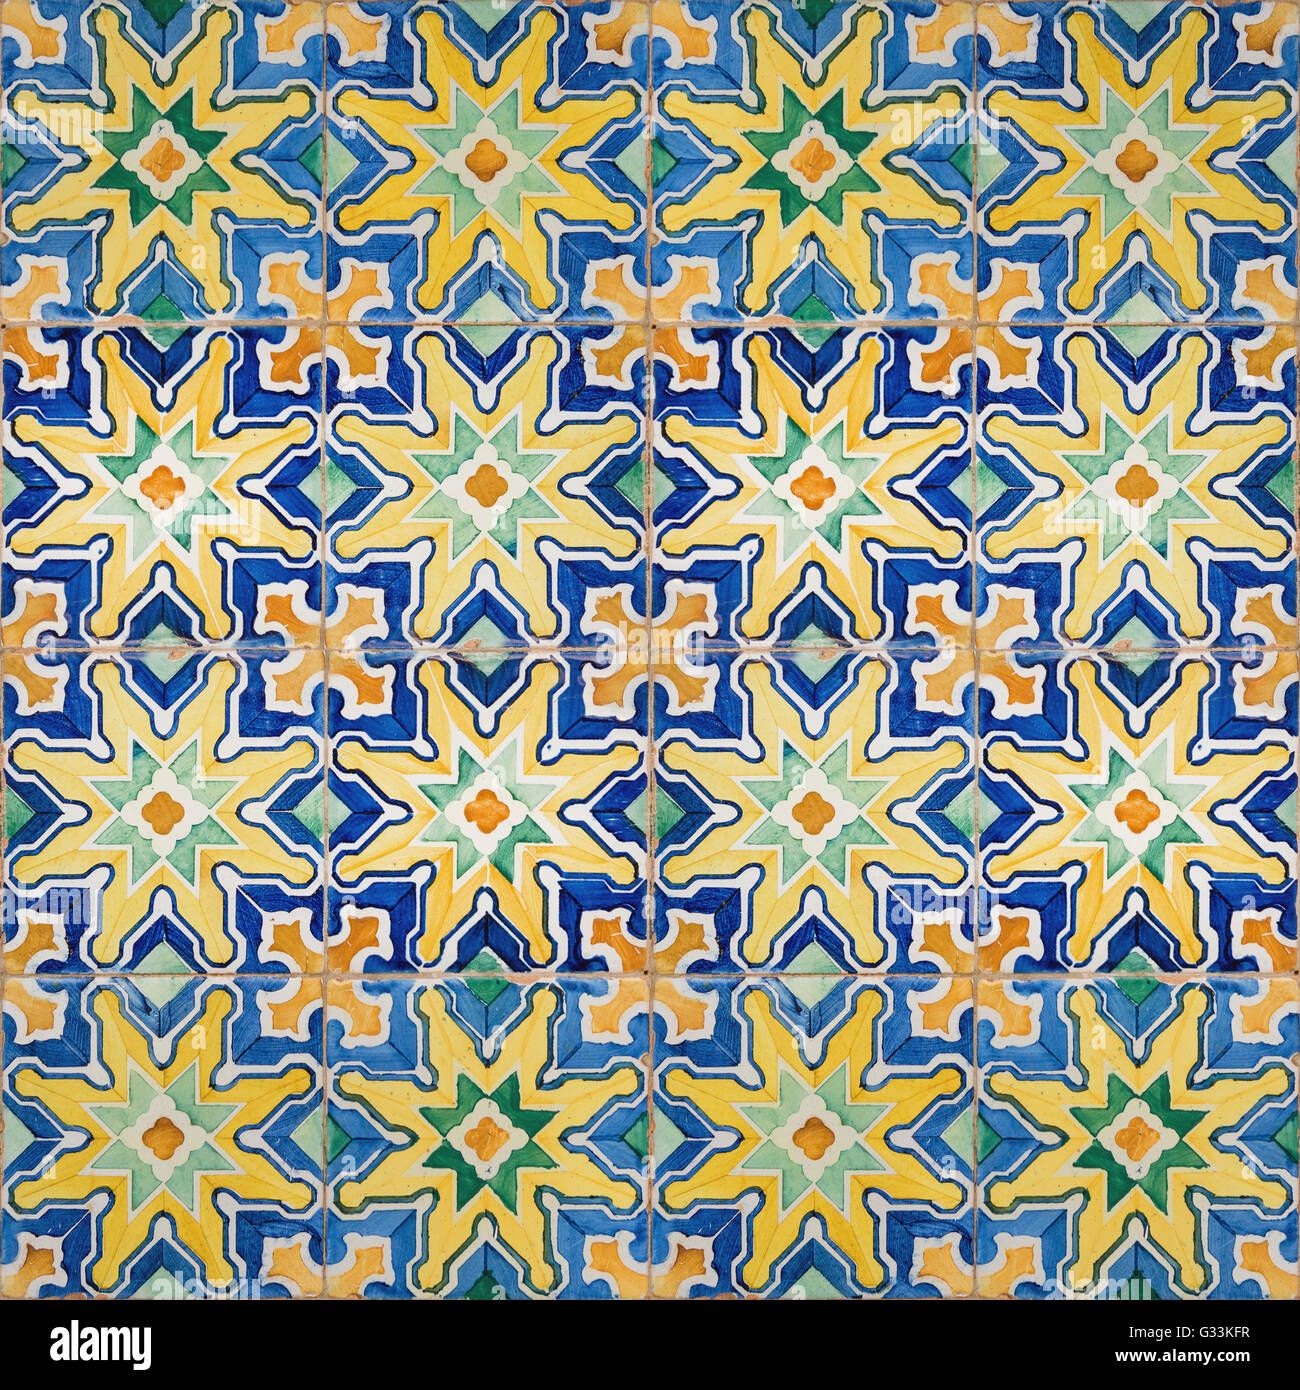 traditional portuguese tiles photos traditional portuguese tiles images alamy. Black Bedroom Furniture Sets. Home Design Ideas